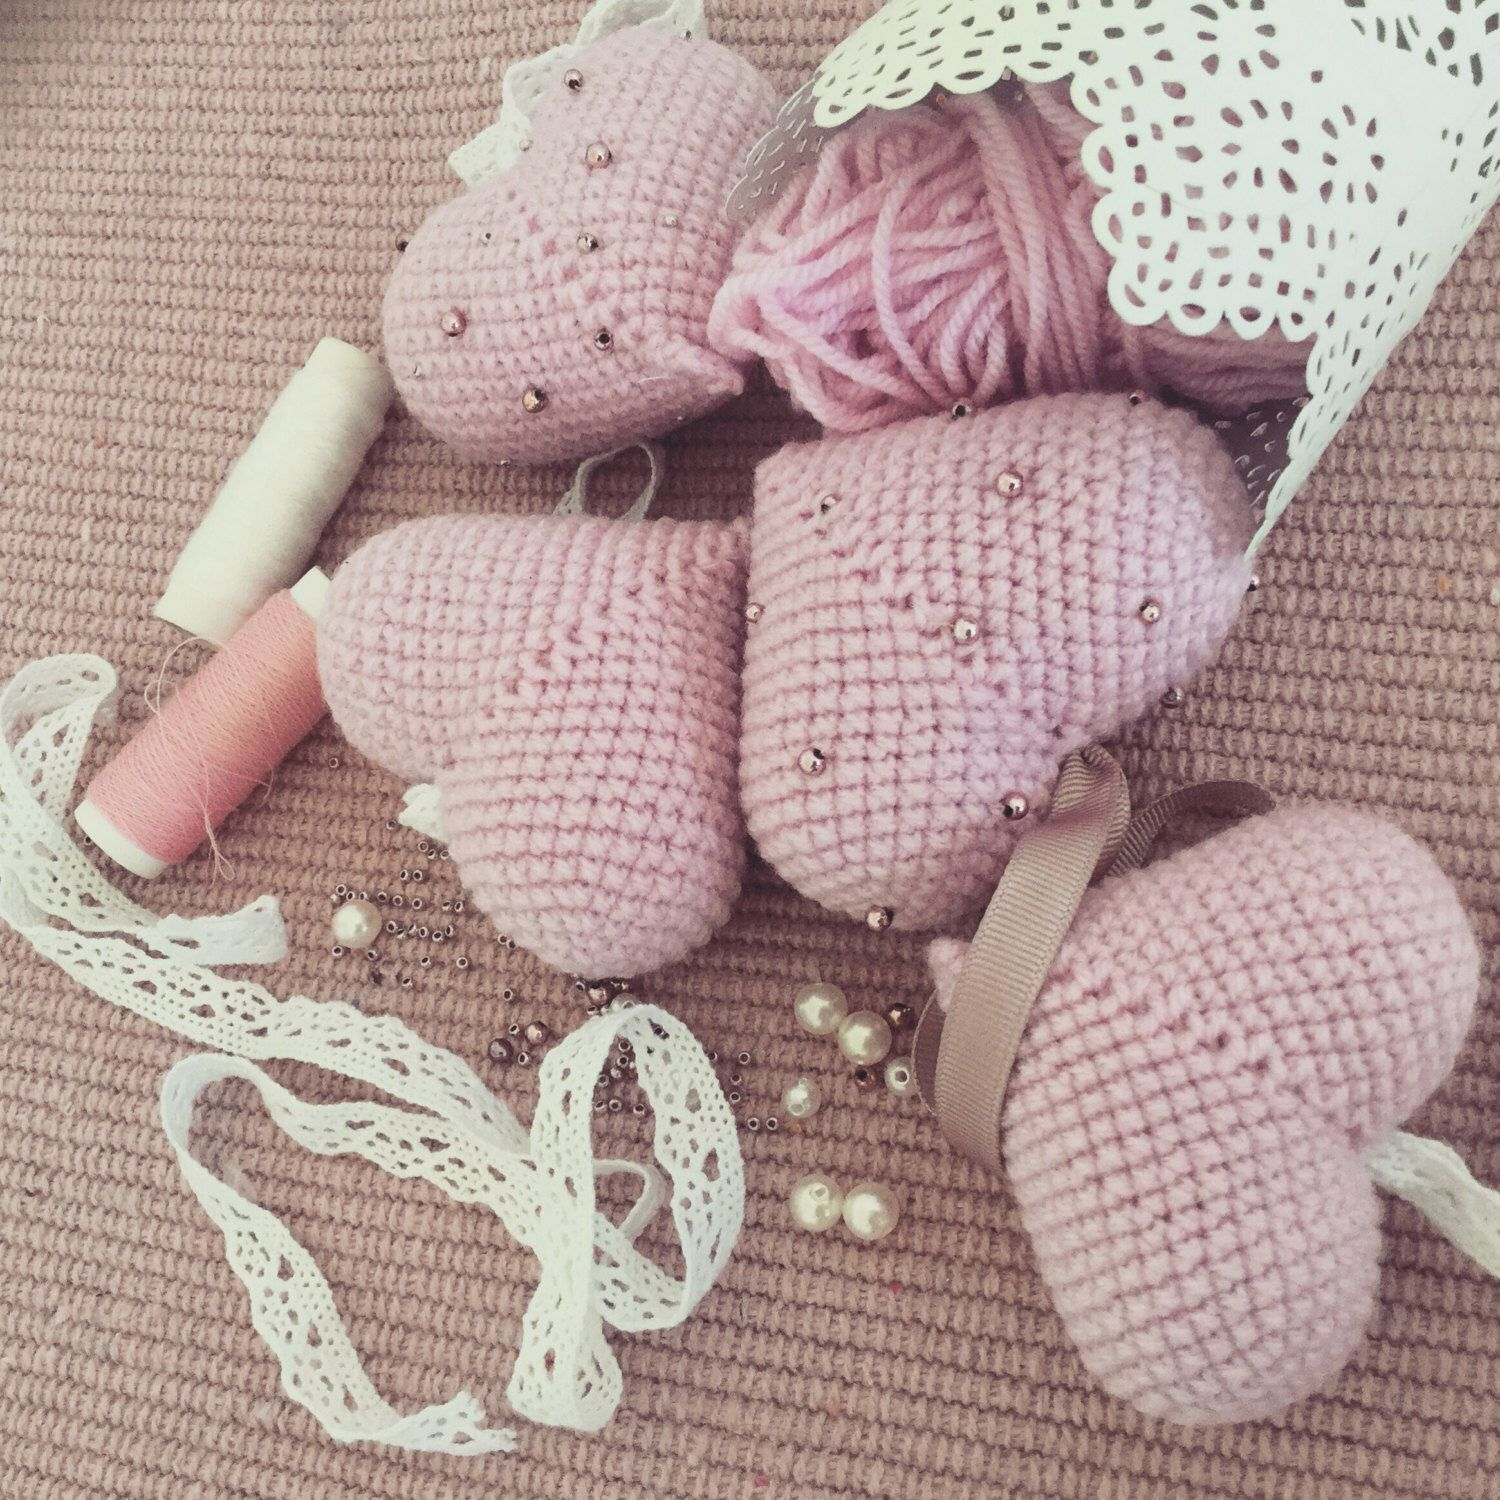 Knitted hearts by LaPetiteLavalloise on Etsy https://www.etsy.com ...